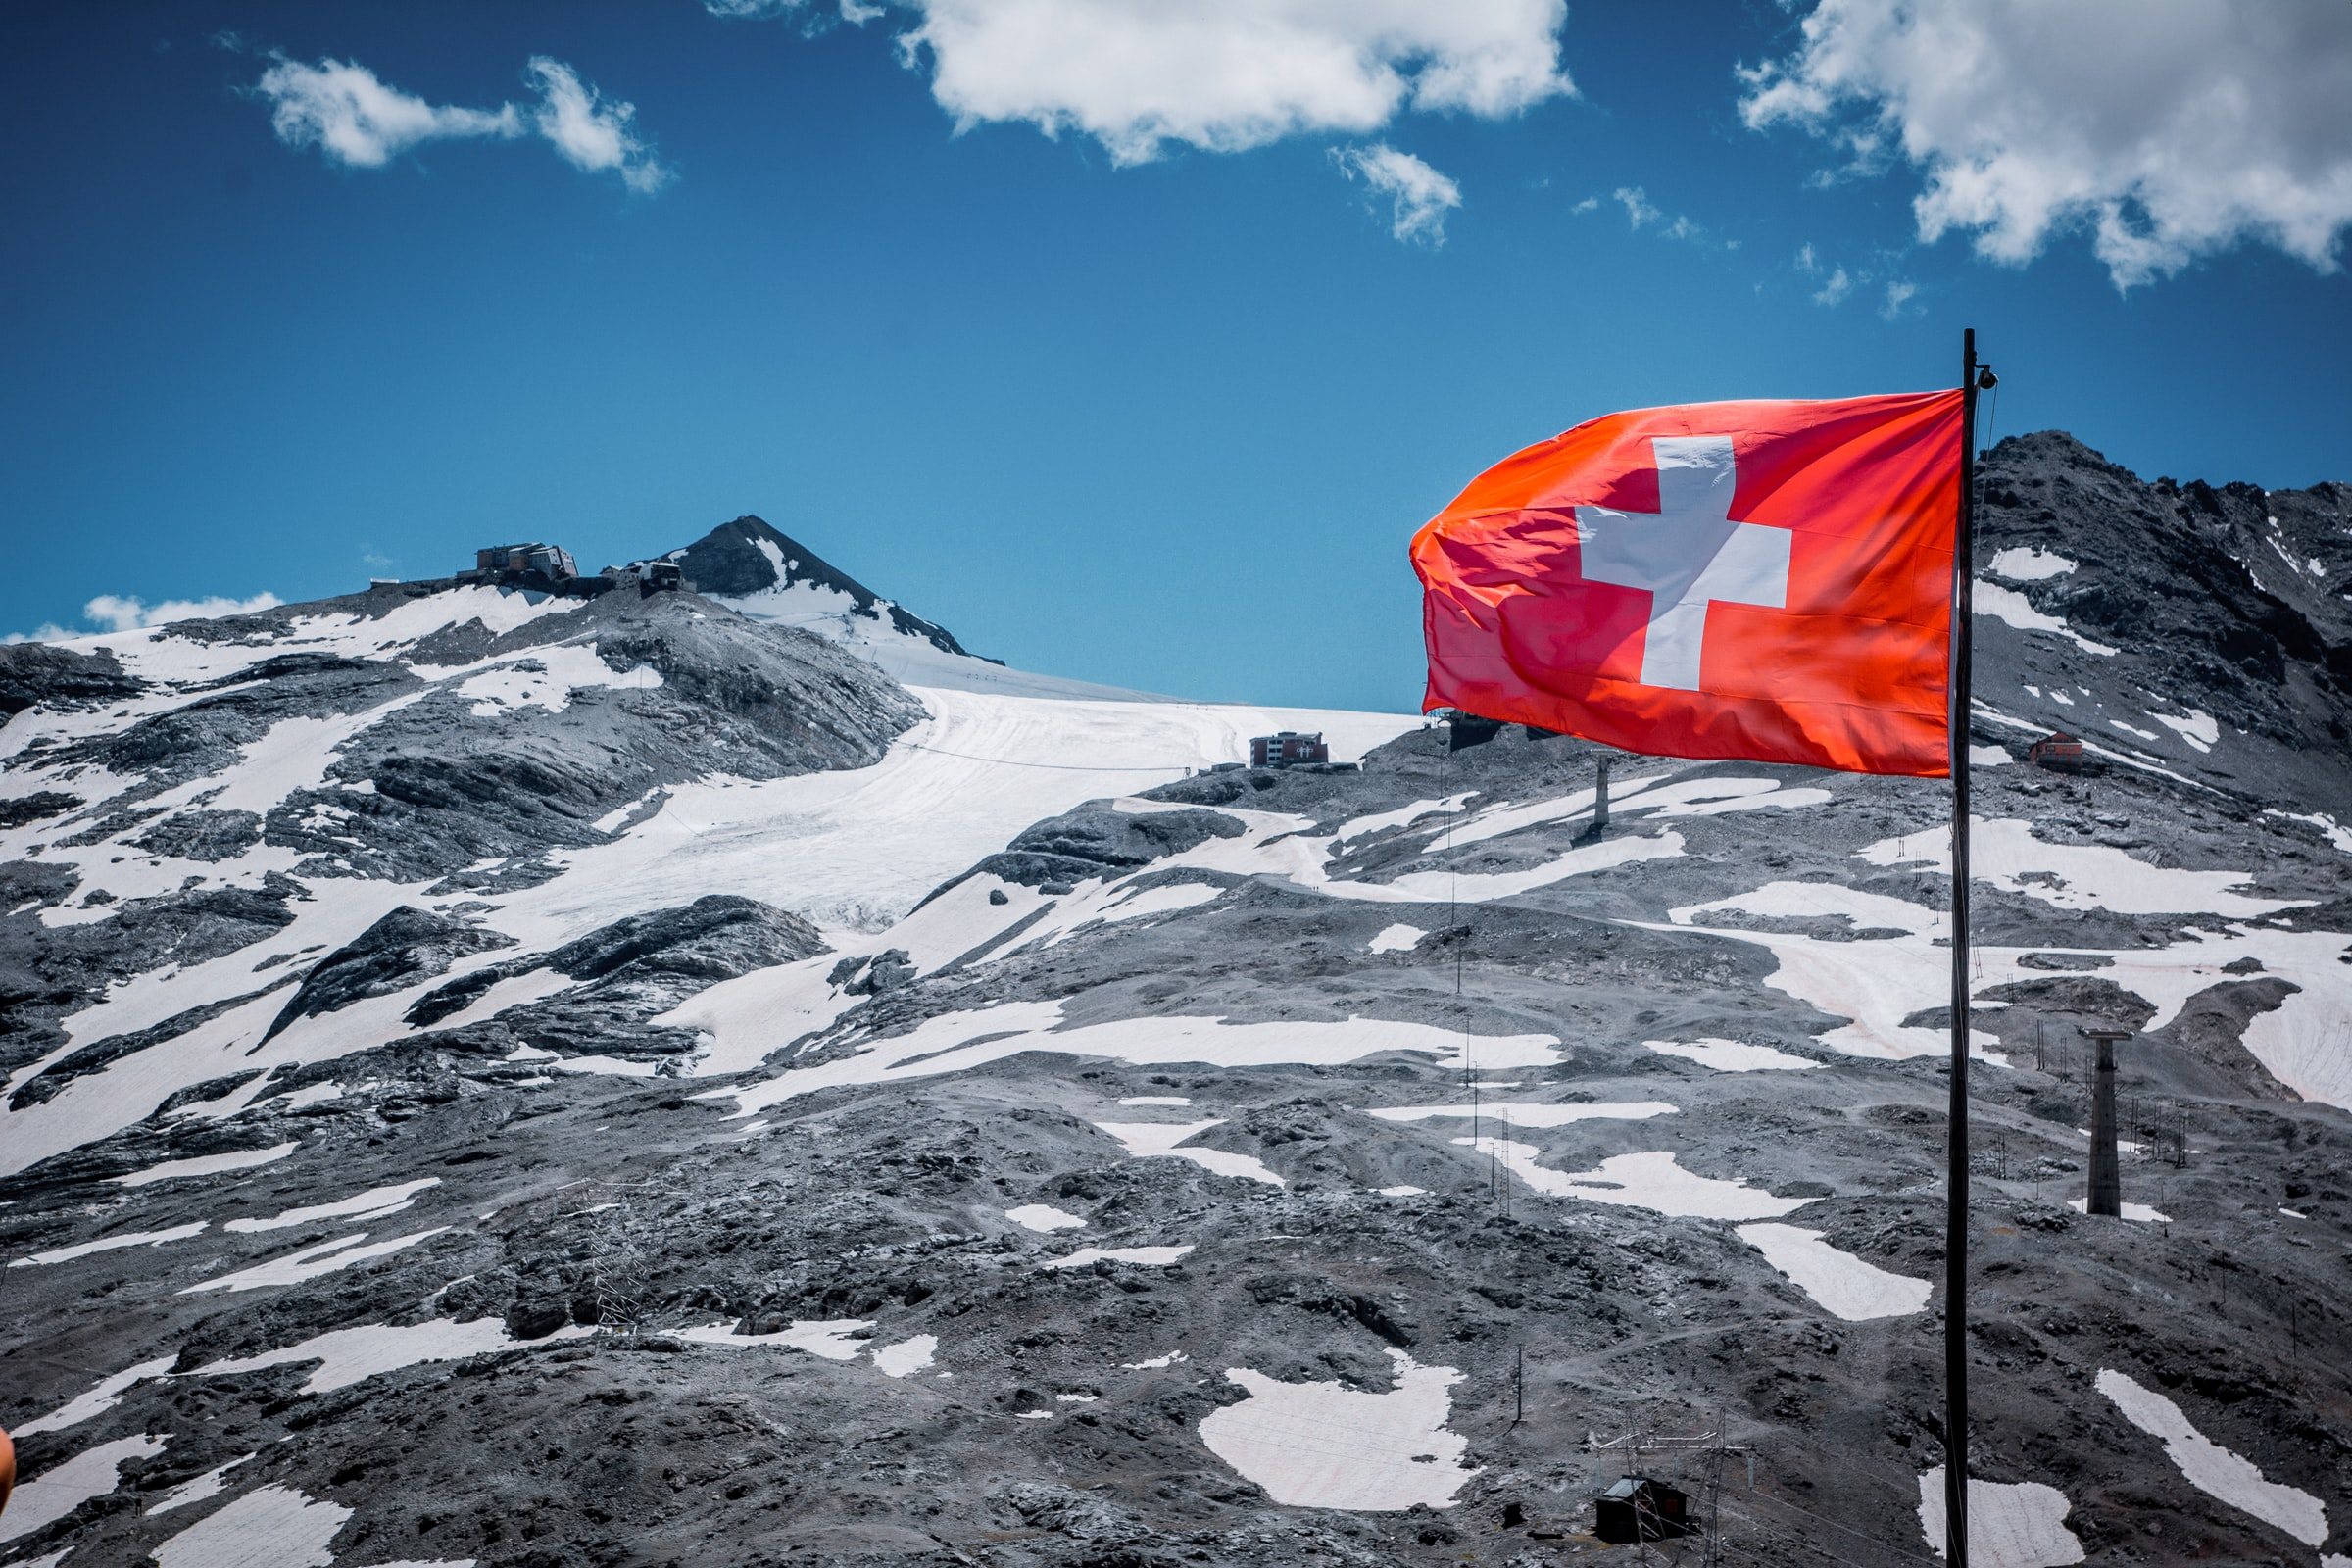 Swiss regulator approves first crypto investment fund